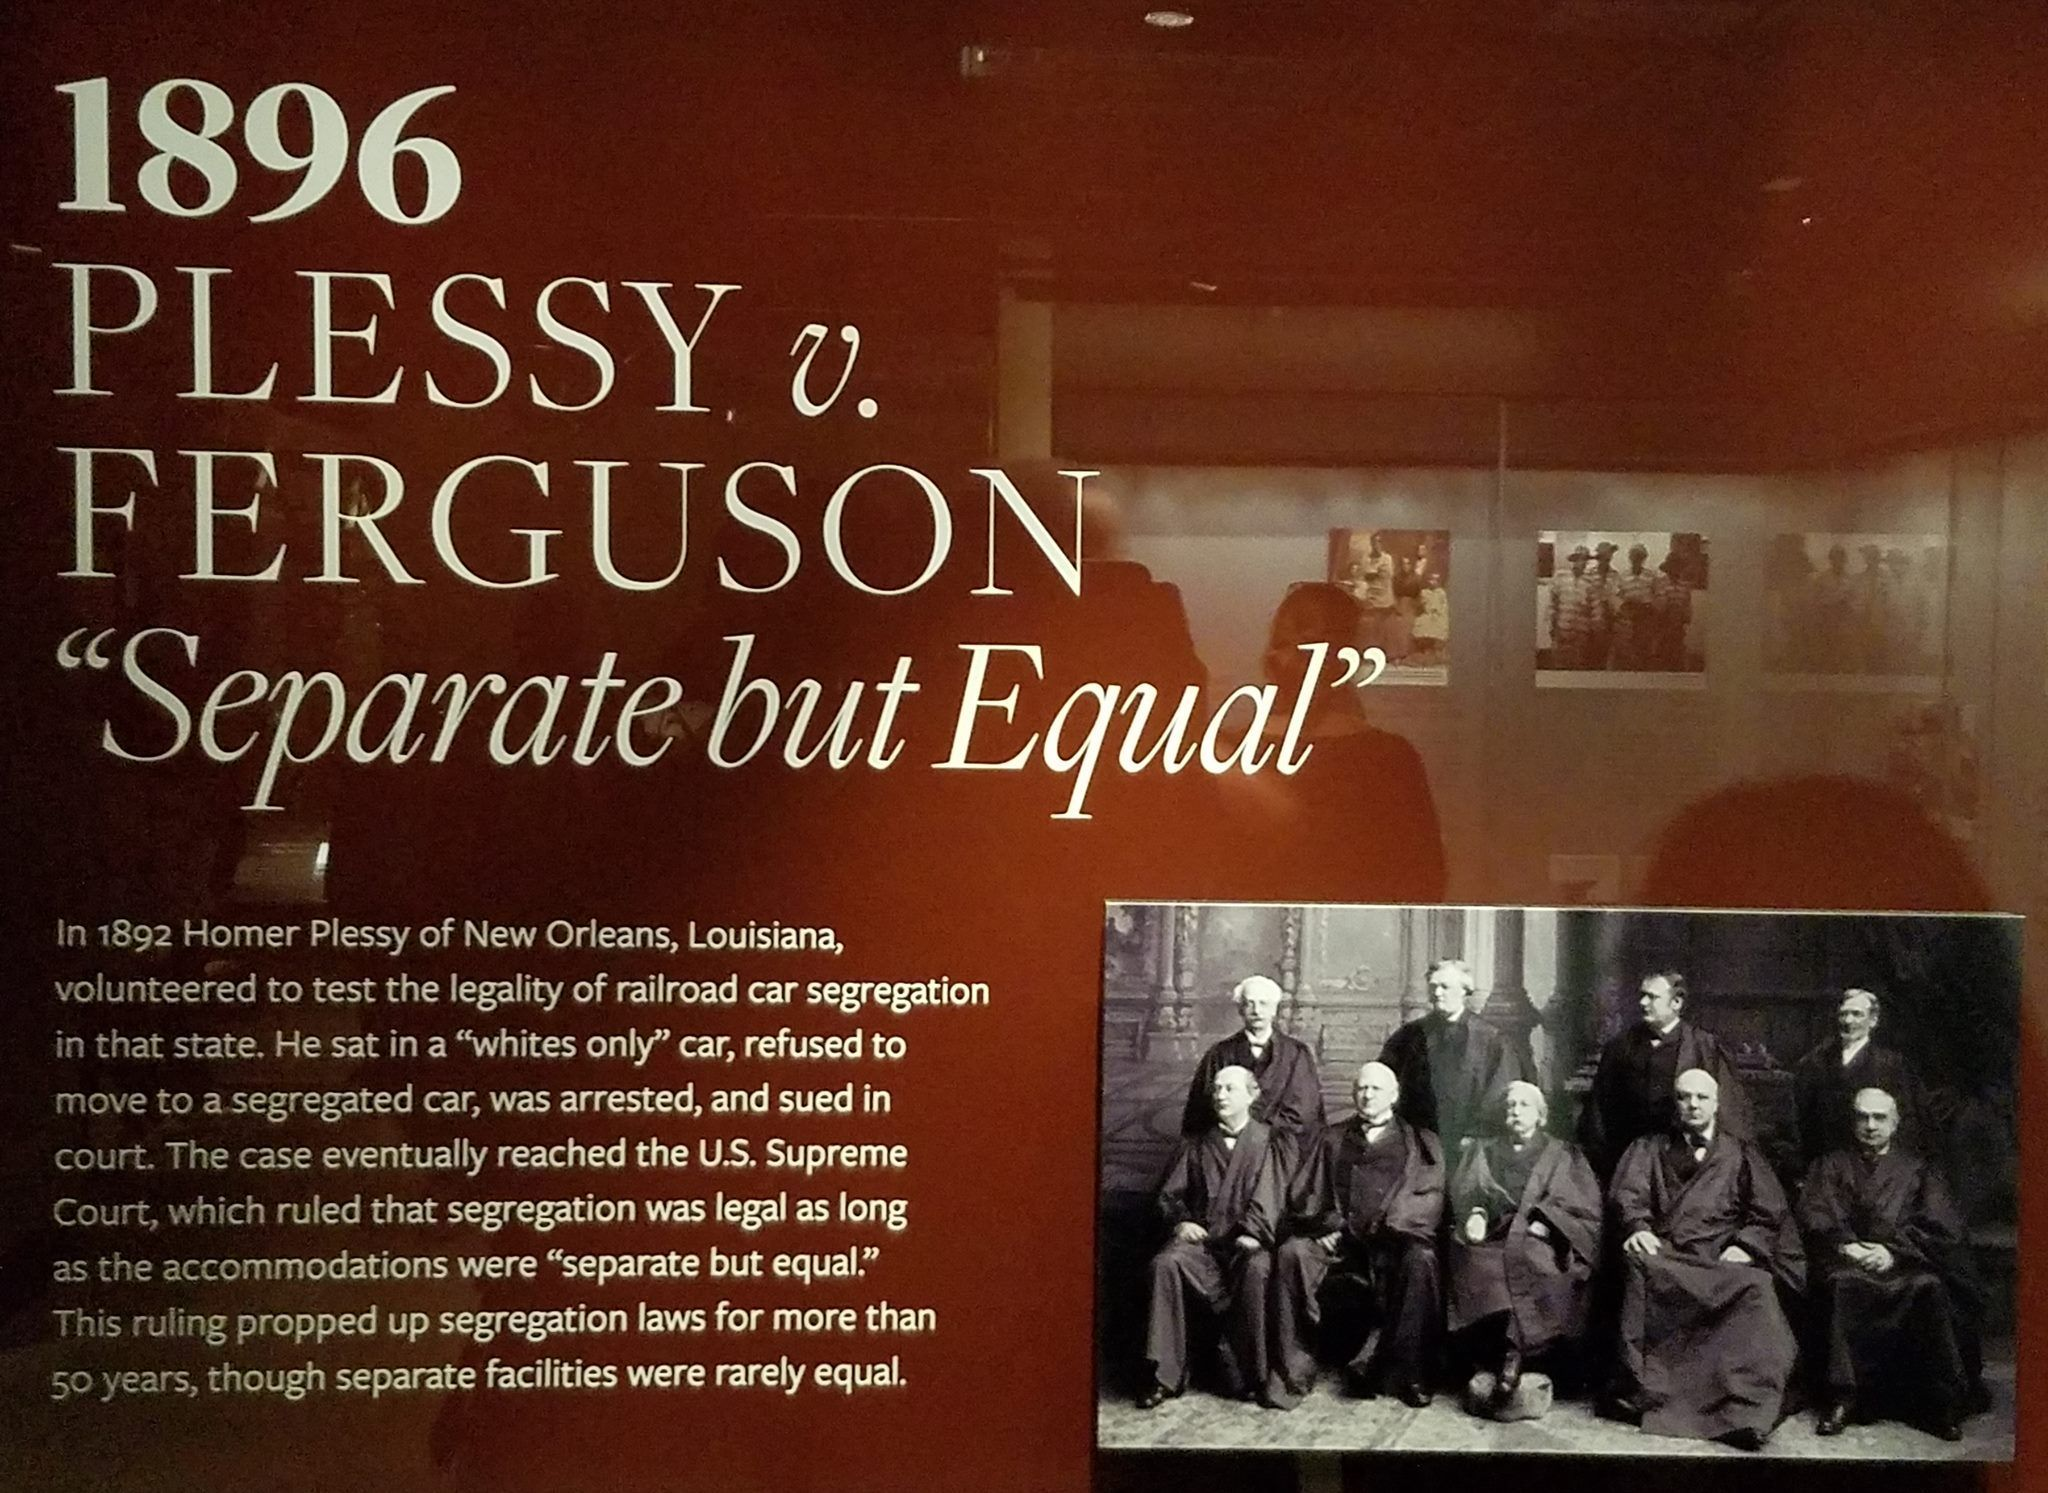 Gracious Homer Plessy Why Was Homer Plessy Arrested Weegy Why Was Homer Plessy Arrested Quizlet Homer Plessy Plessy Ferguson But Plessy Ferguson But